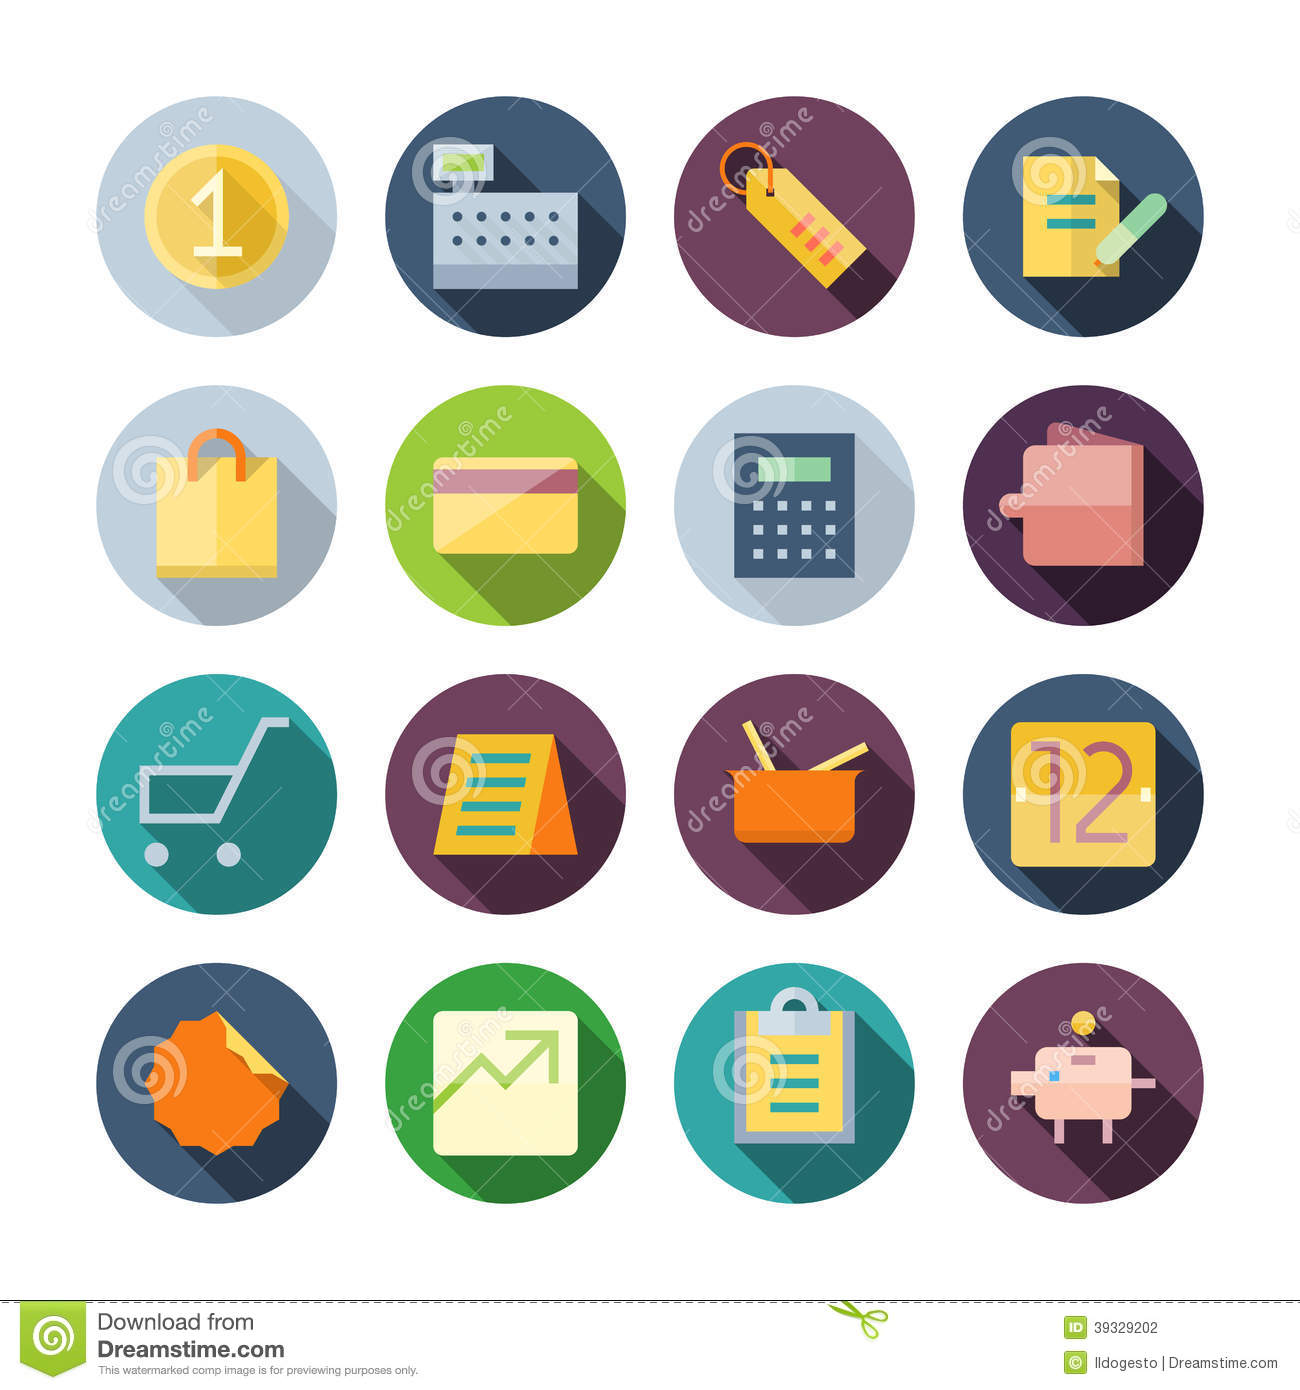 Flat Design Icons For Business and Retail